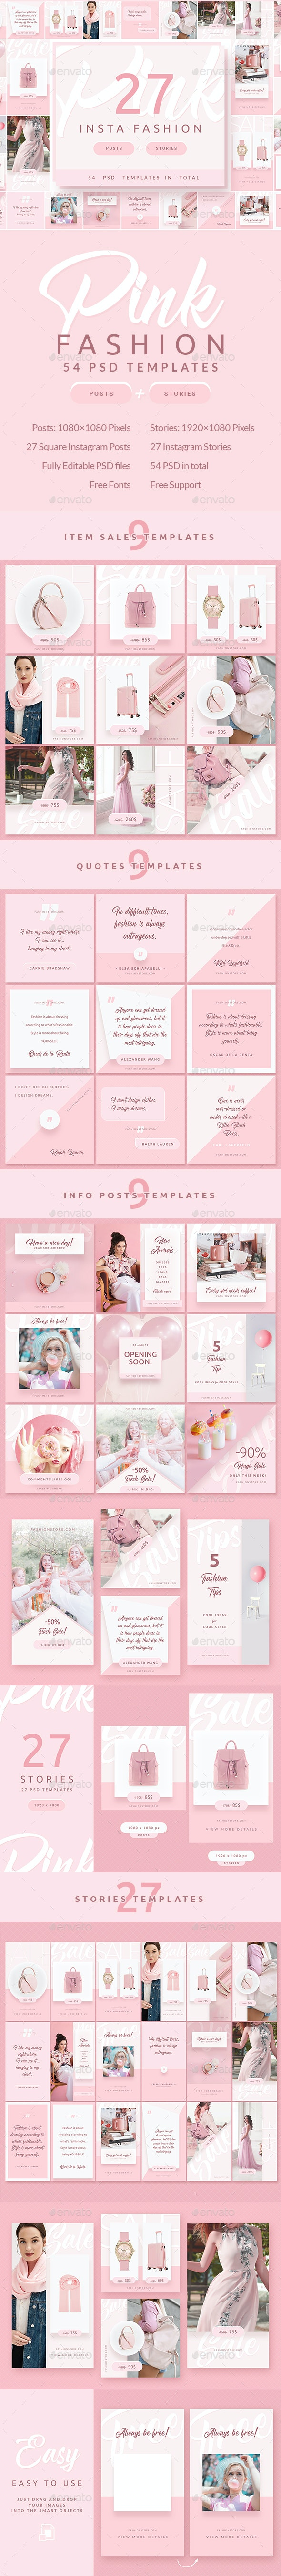 Pink Fashion - Instagram Posts & Stories - Miscellaneous Social Media